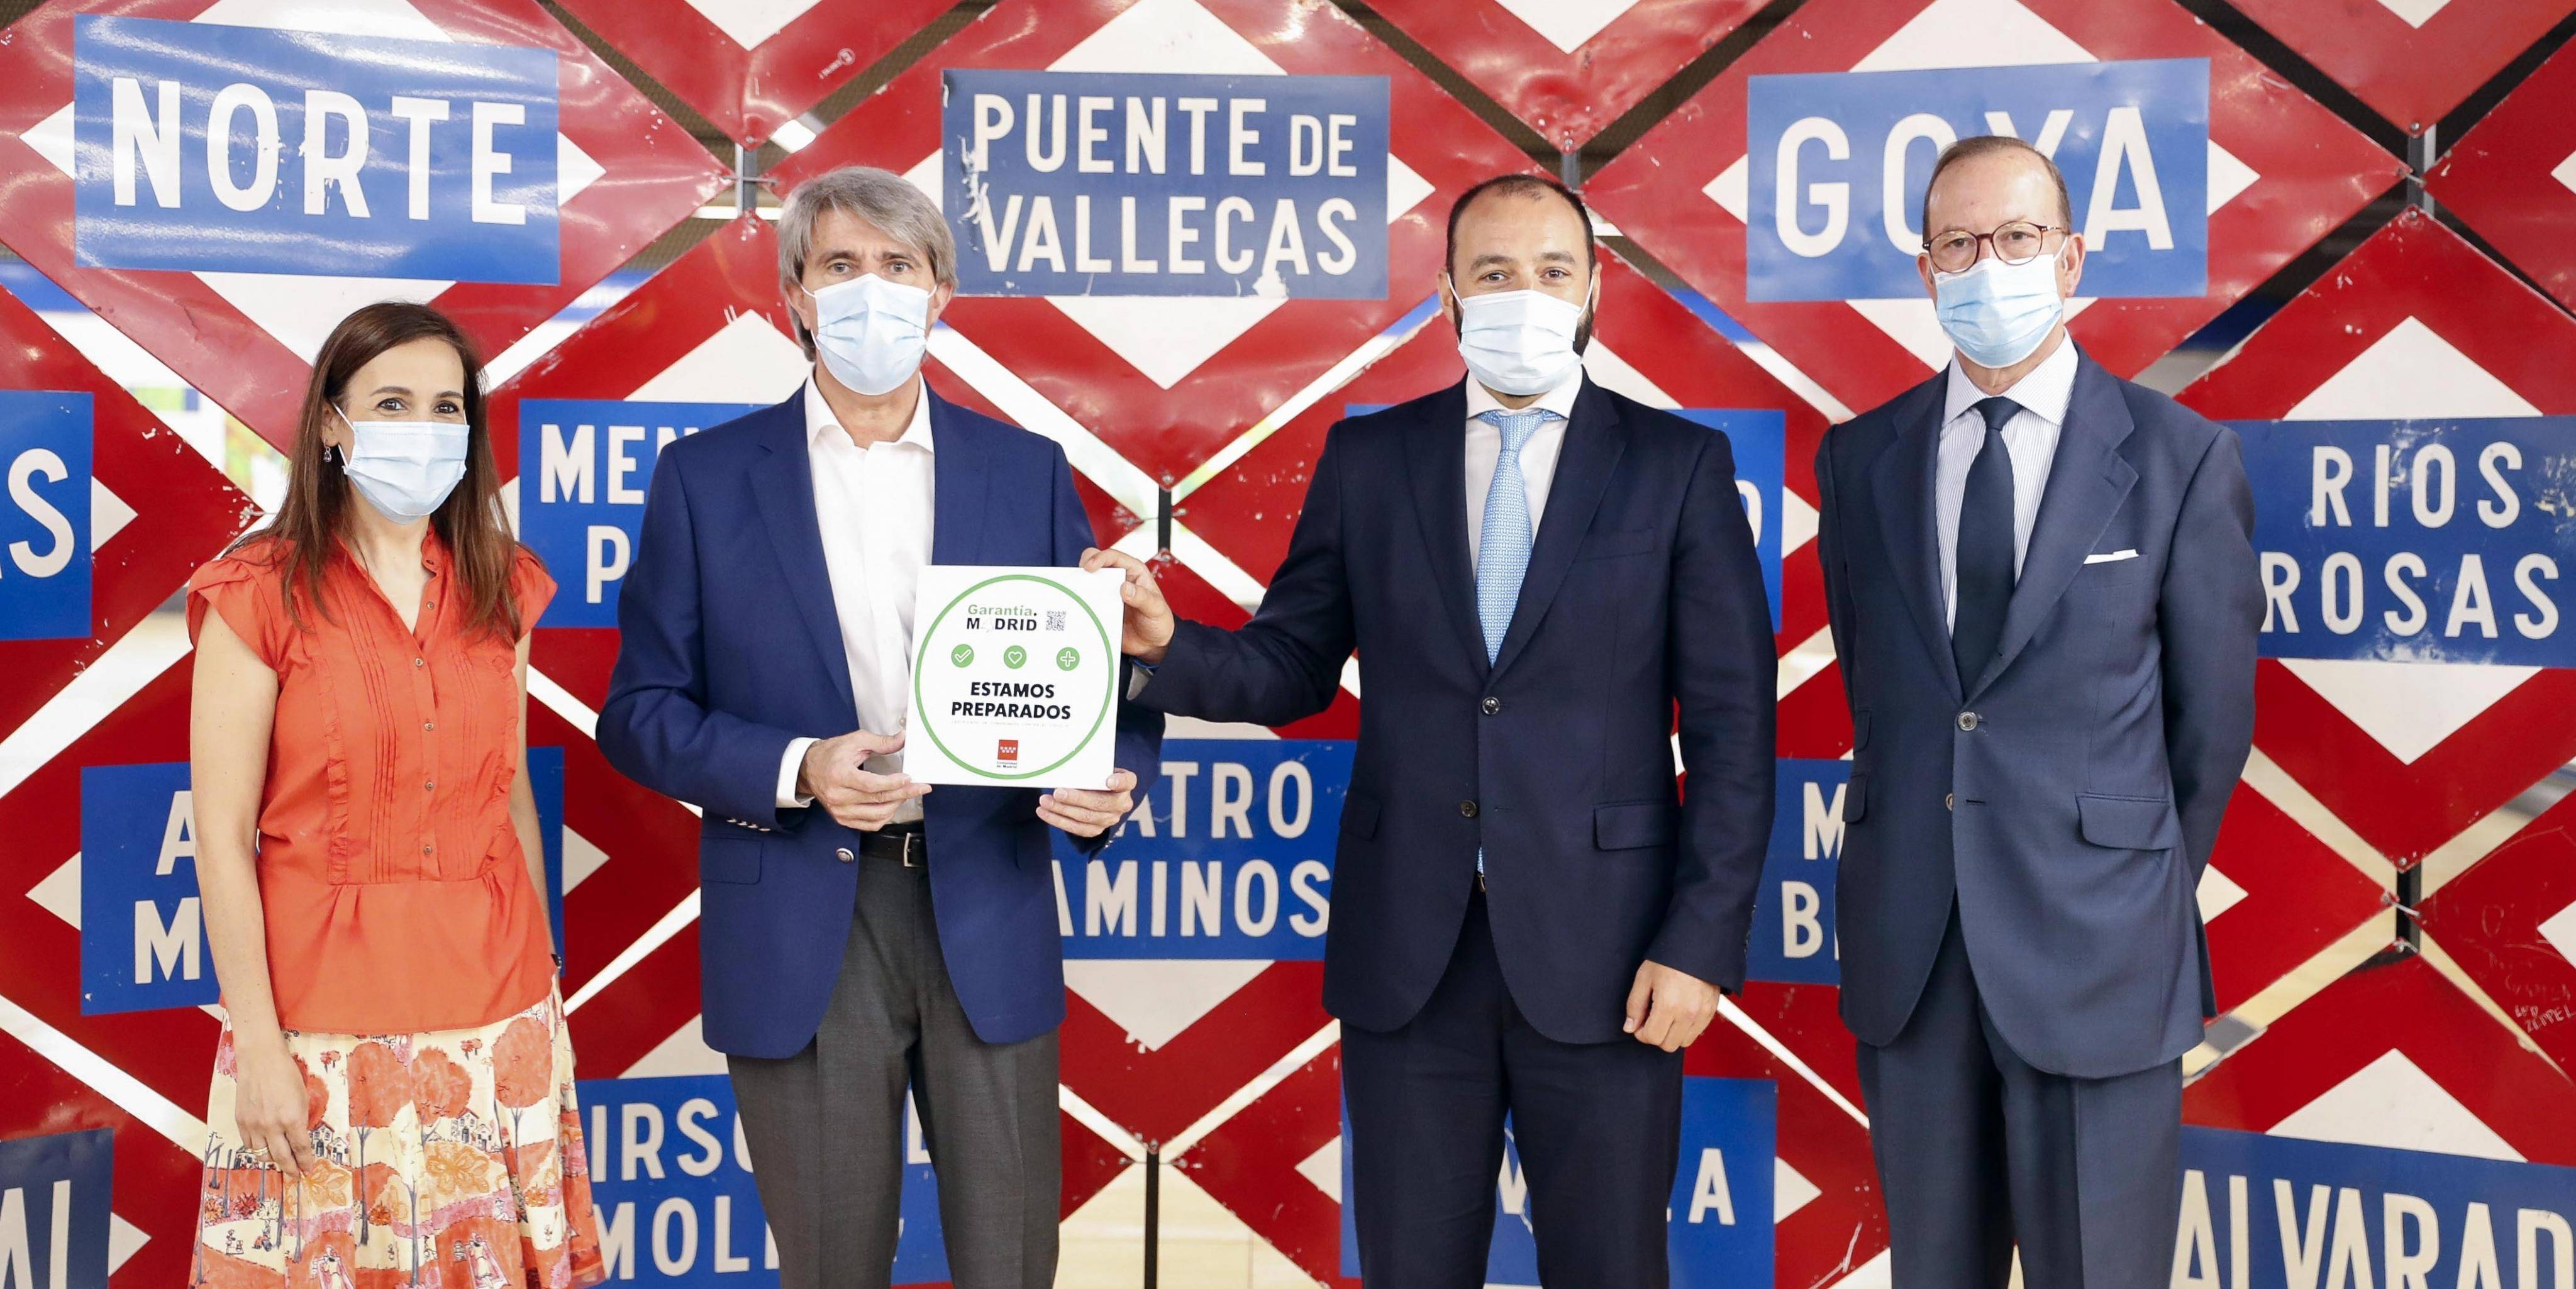 The Regional Government awards the Madrid Guarantee seal to Metro for its good practices in relation to COVID-19